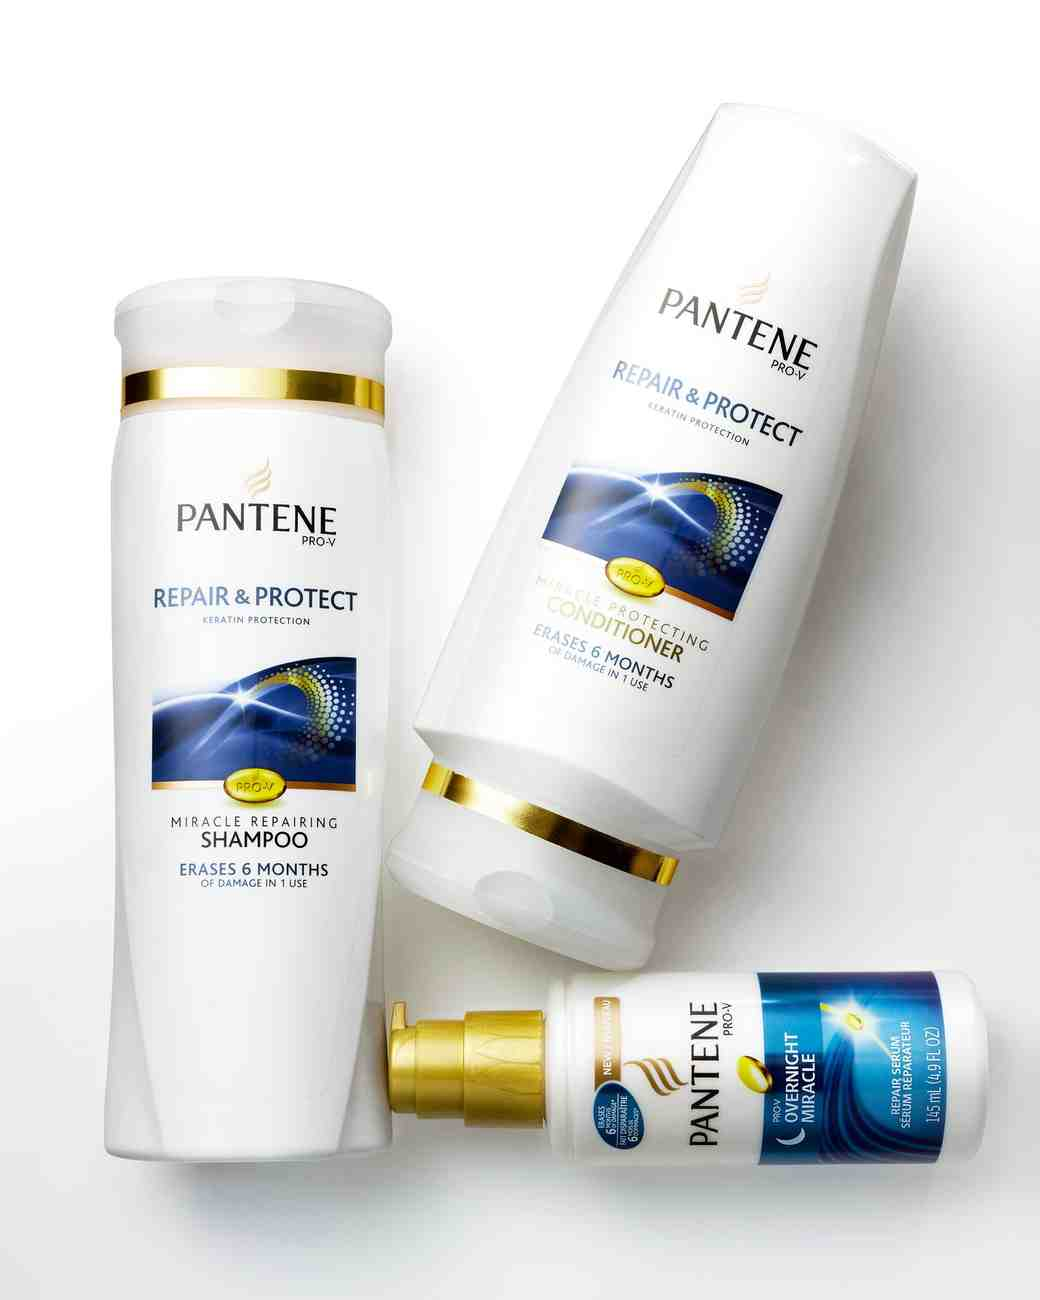 big-day-beauty-awards-pantene-pro-v-repair-and-protect-shampoo-and-conditioner-0216.jpg